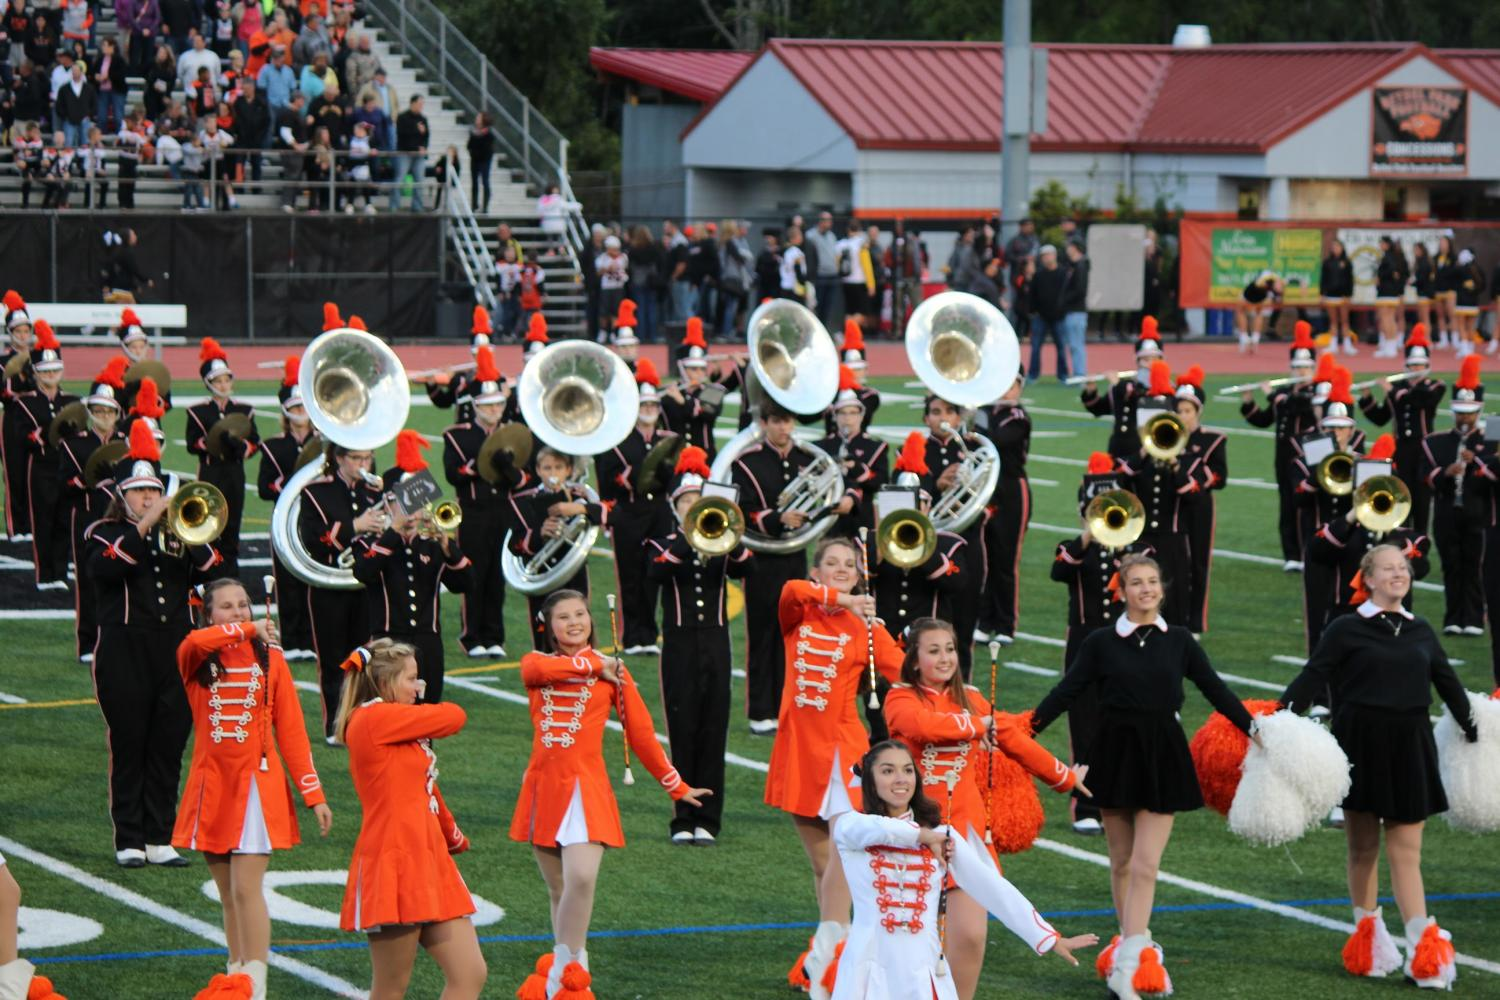 The Marching Band performs during the halftime show of the football game vs. NA on Sept. 1.